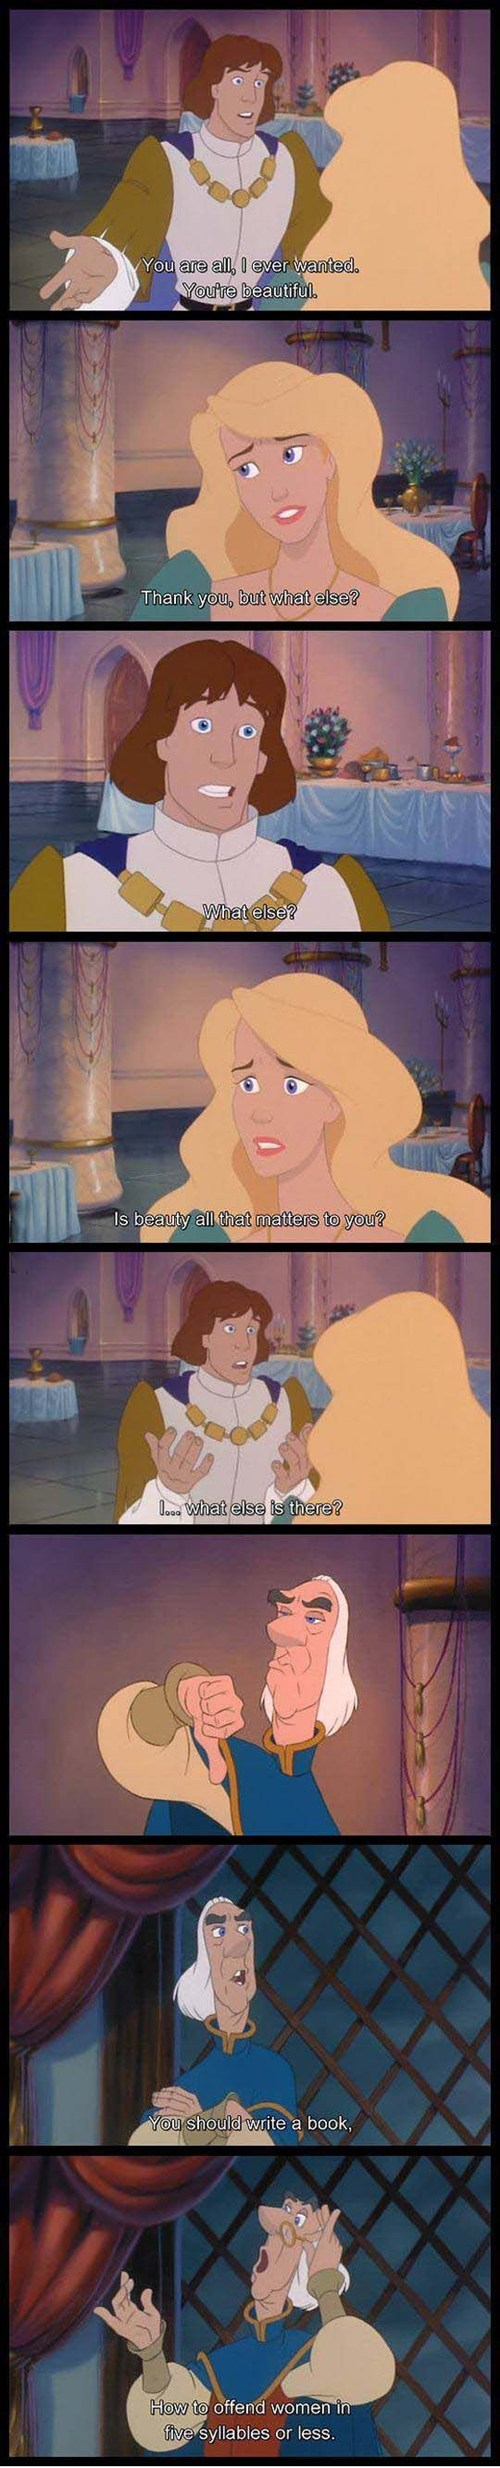 quotes,the swan princess,cartoons,wooing,funny,g rated,dating